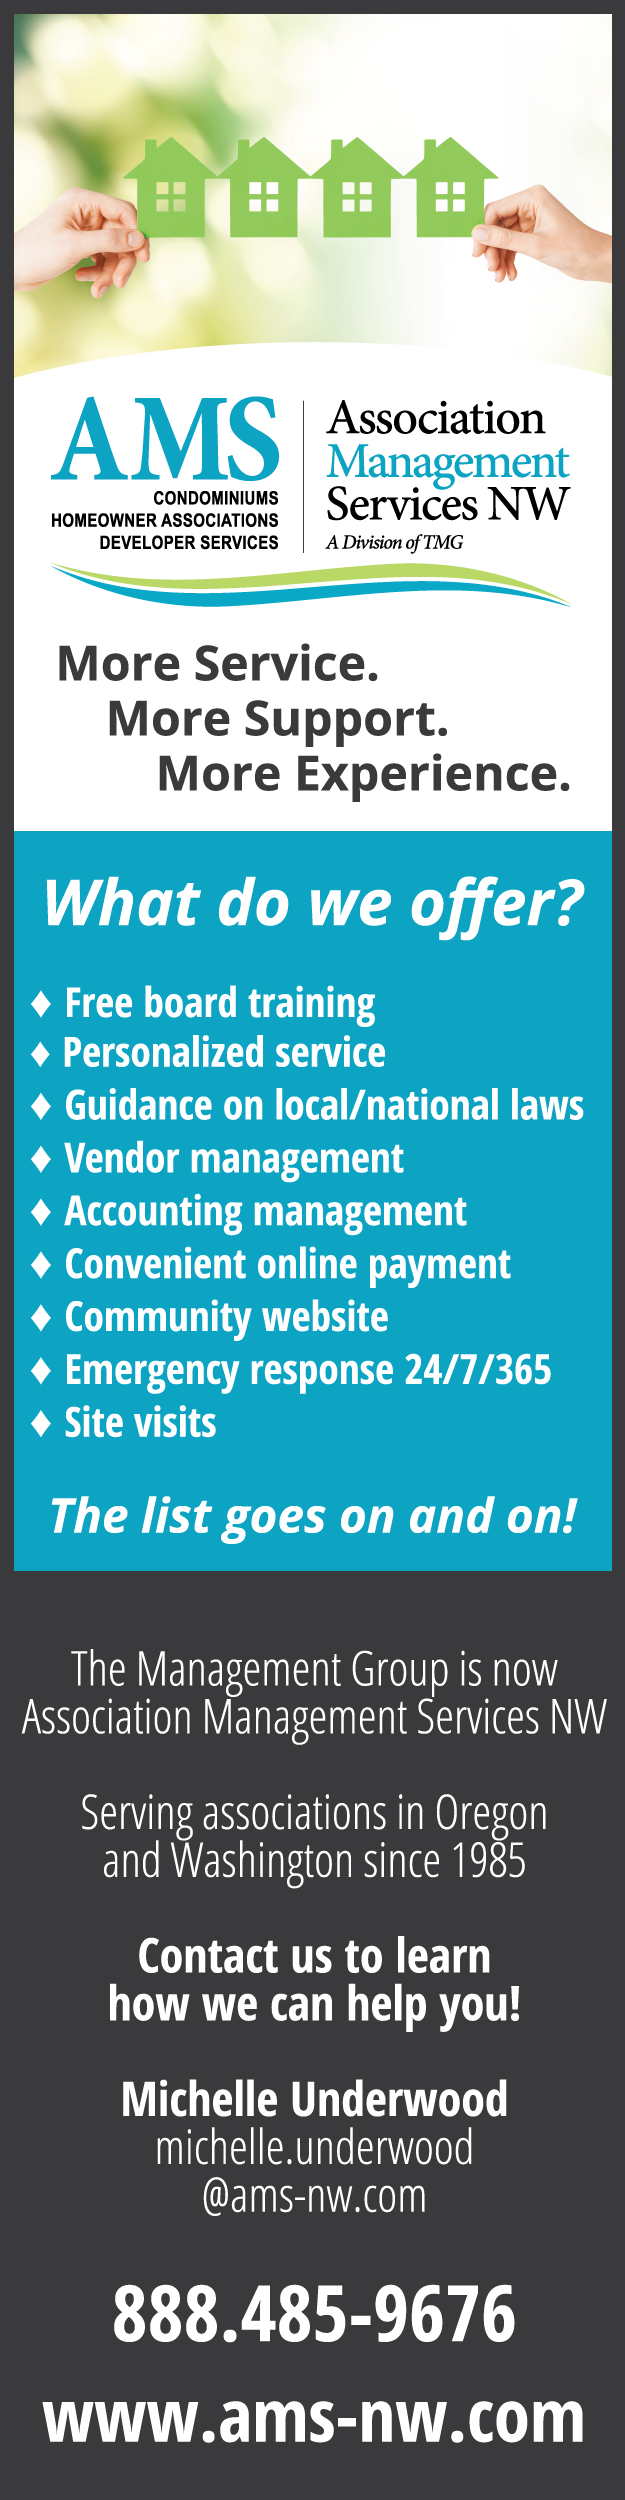 cai-ad-website-banner-ams-2018-1-15.png